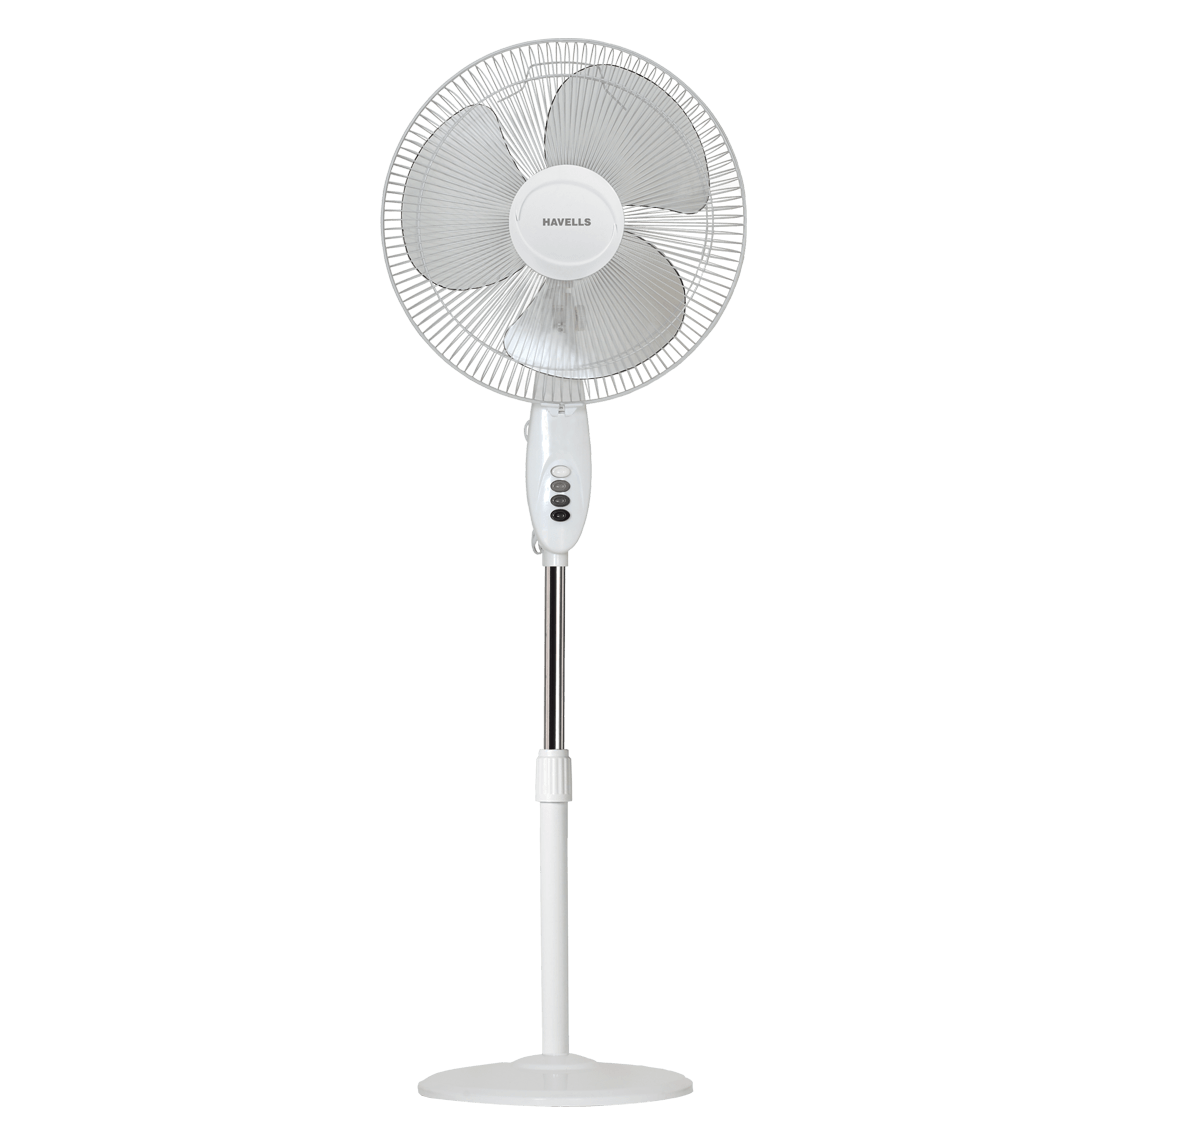 Havells 400 mm Swing  Pedestal Fan